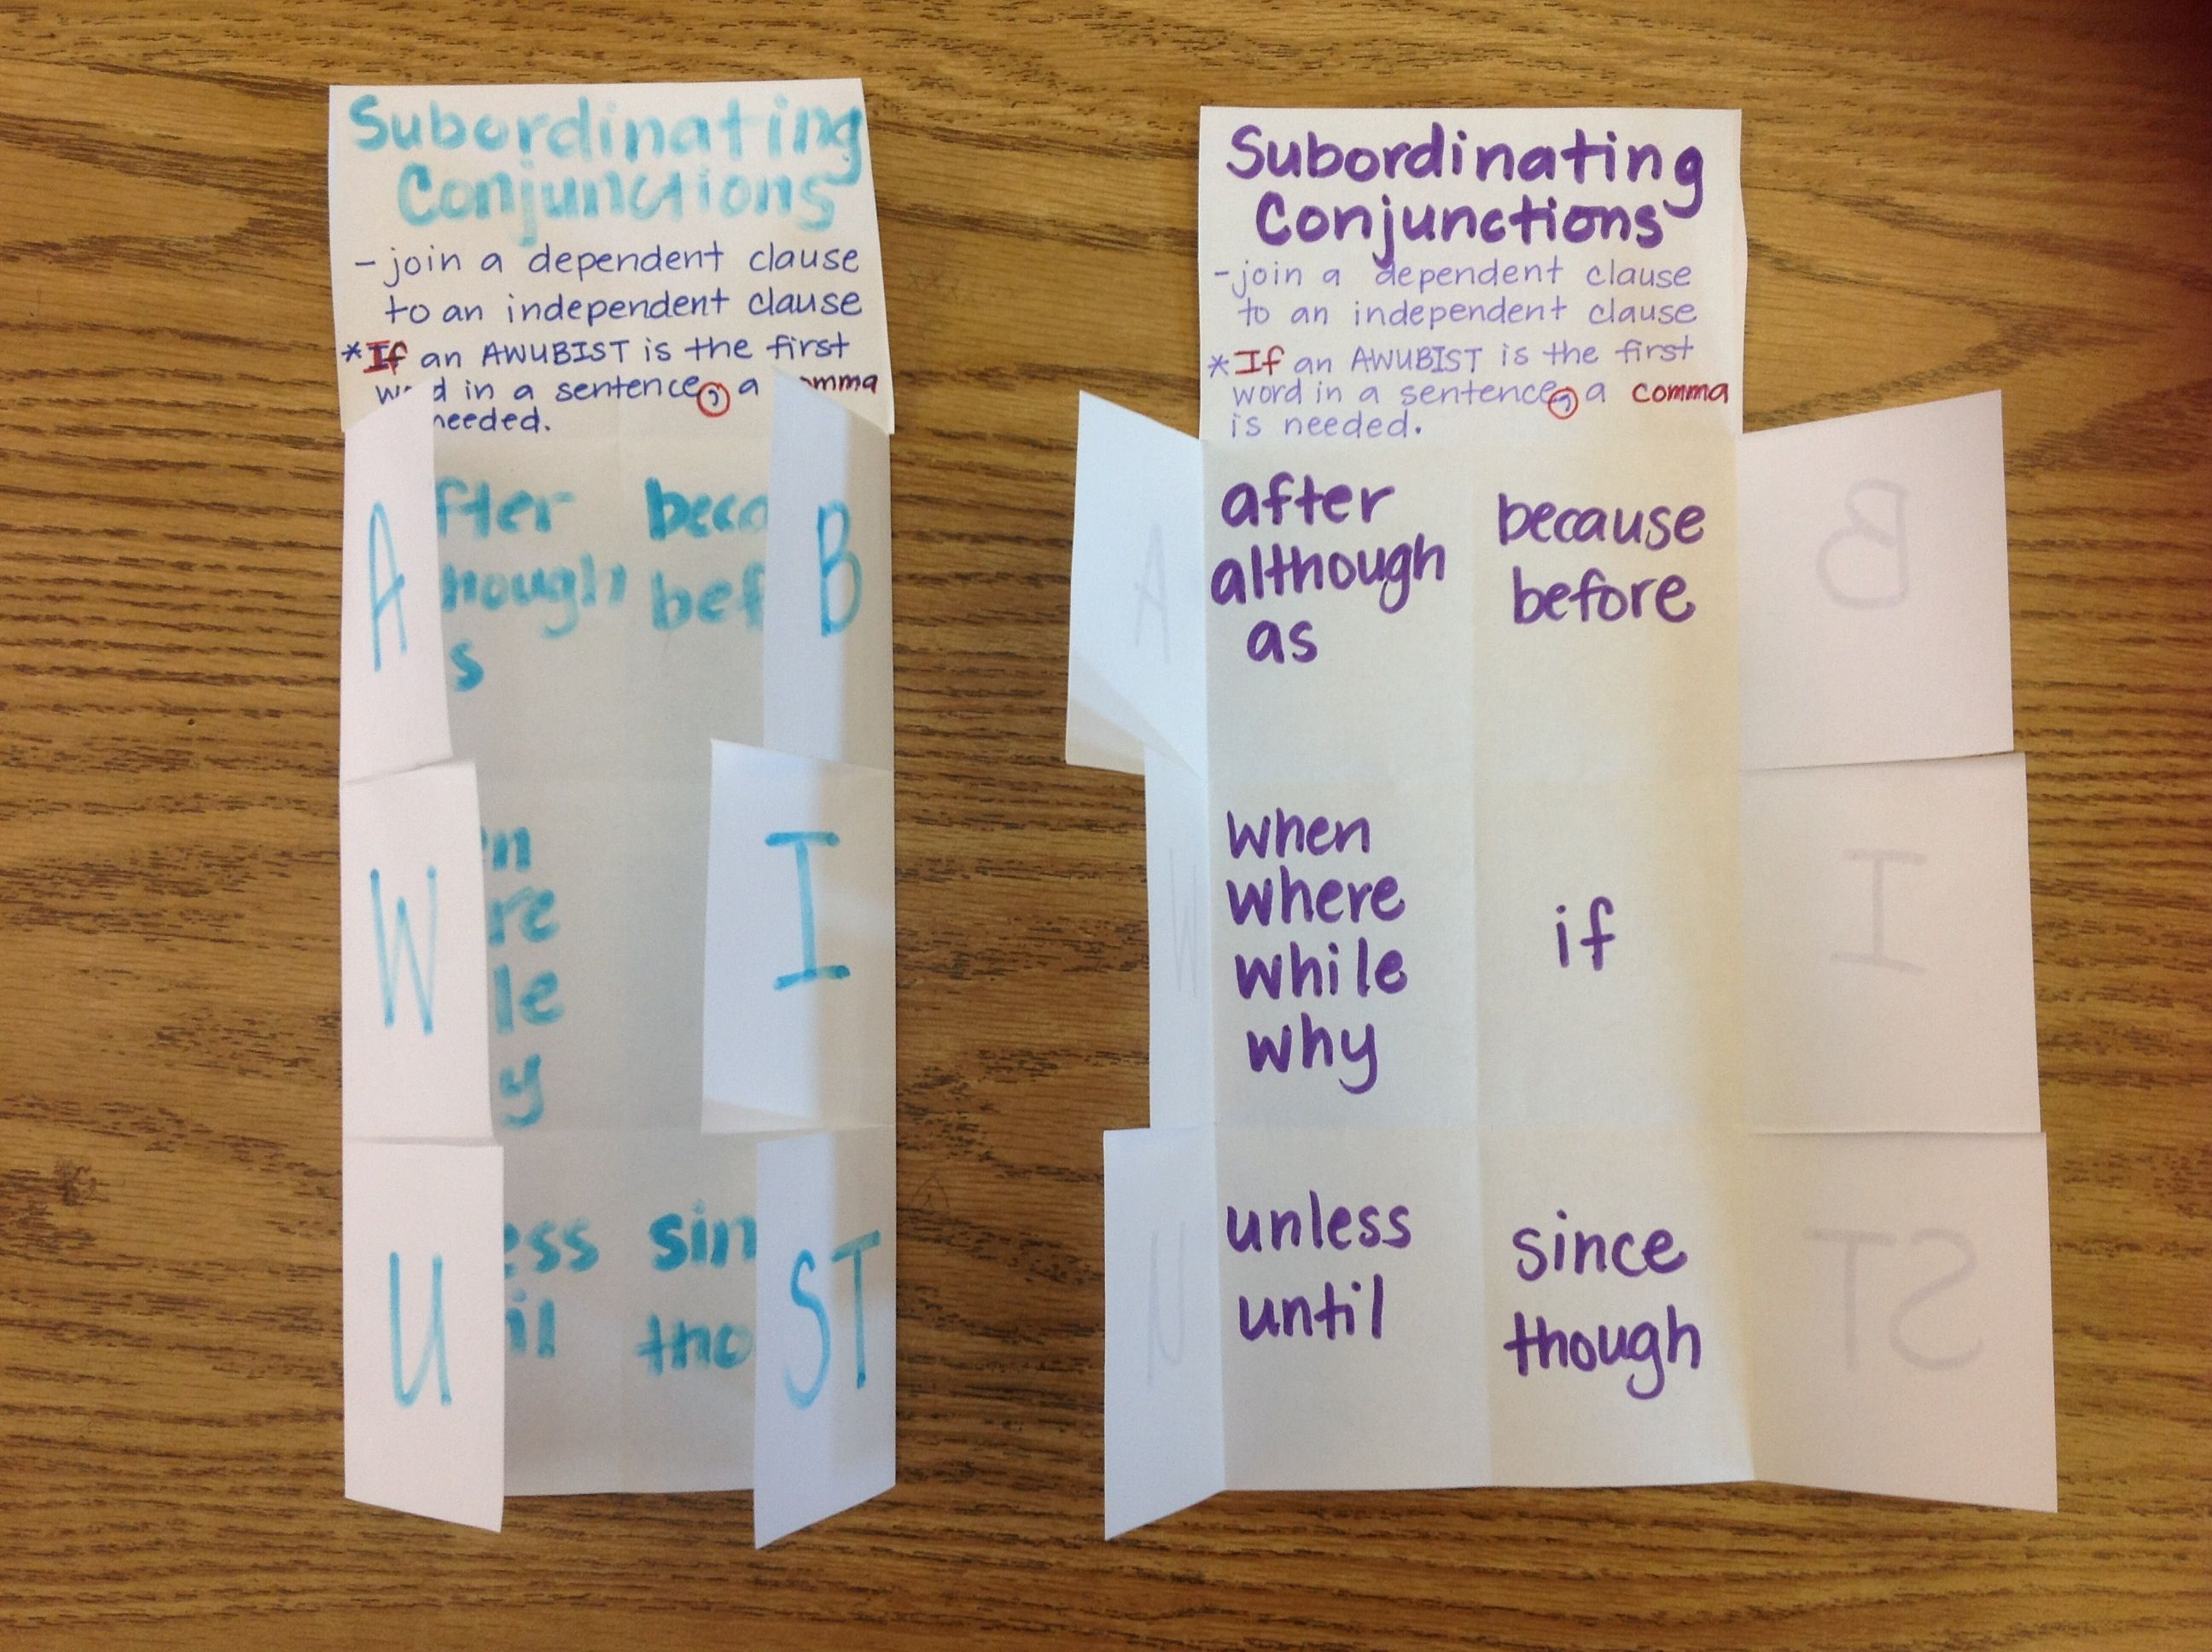 Subordinating Conjunctions Foldable